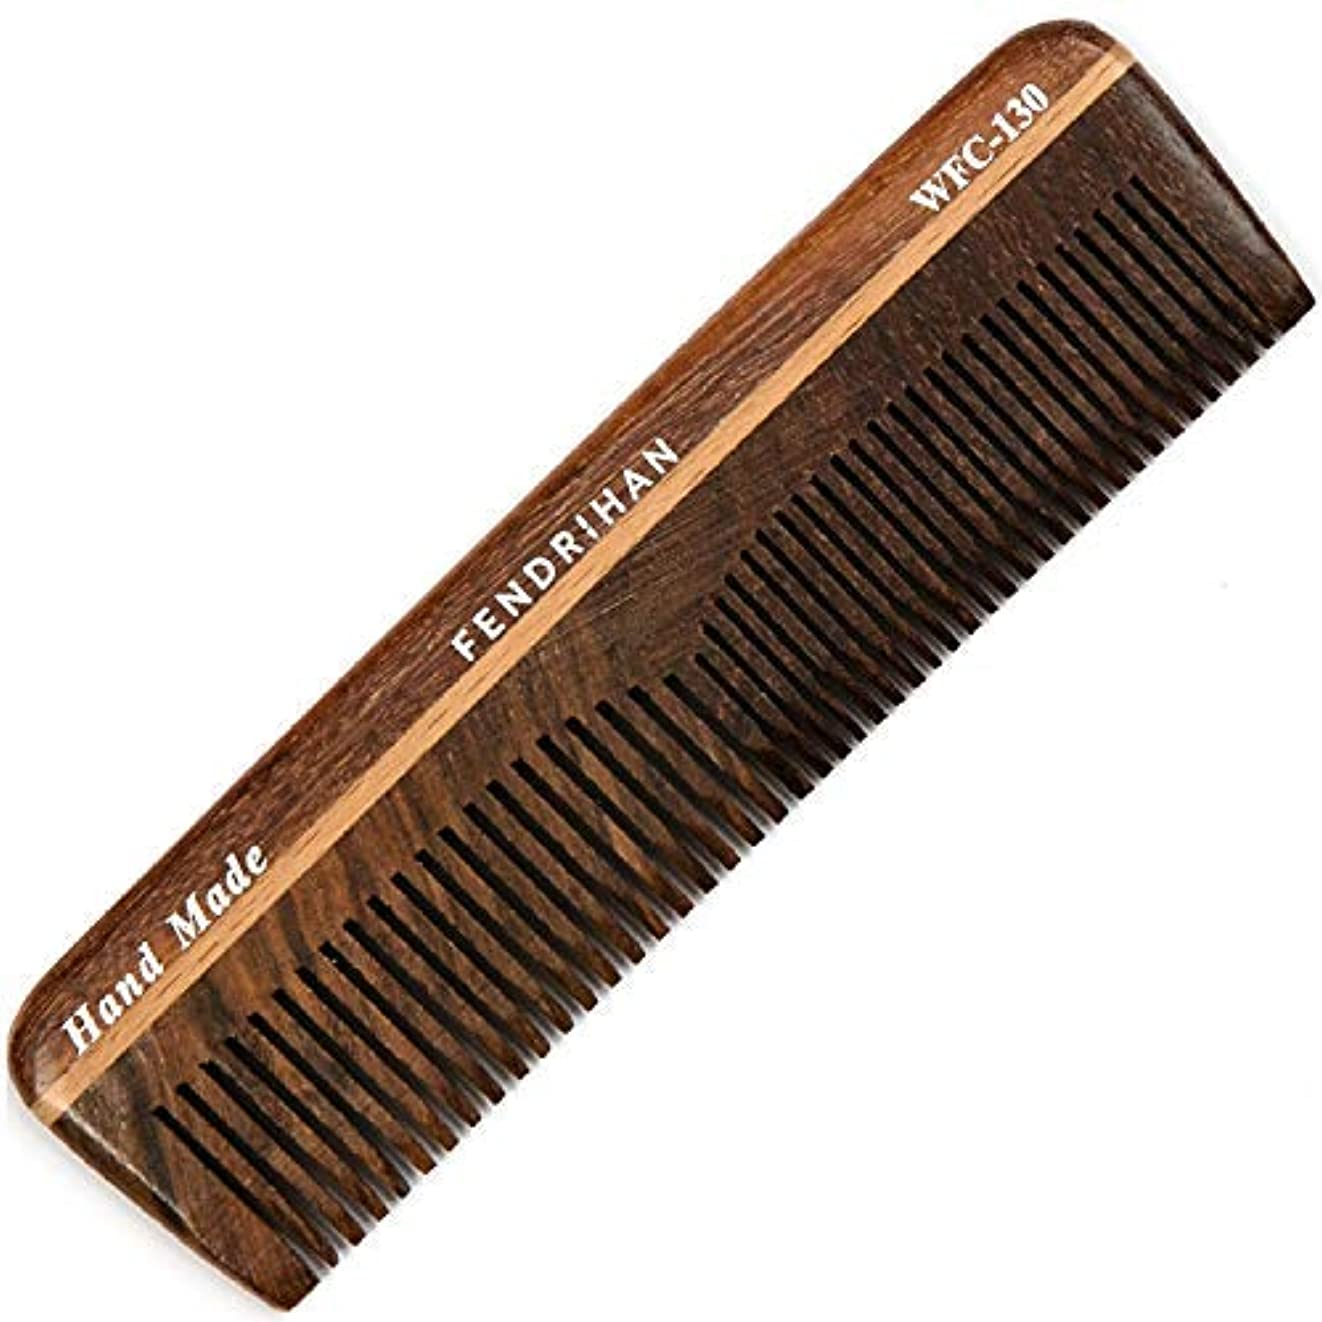 エイリアスしばしば暗黙Fendrihan Wooden Double-Tooth Pocket Barber Grooming Comb (5.1 Inches) [並行輸入品]